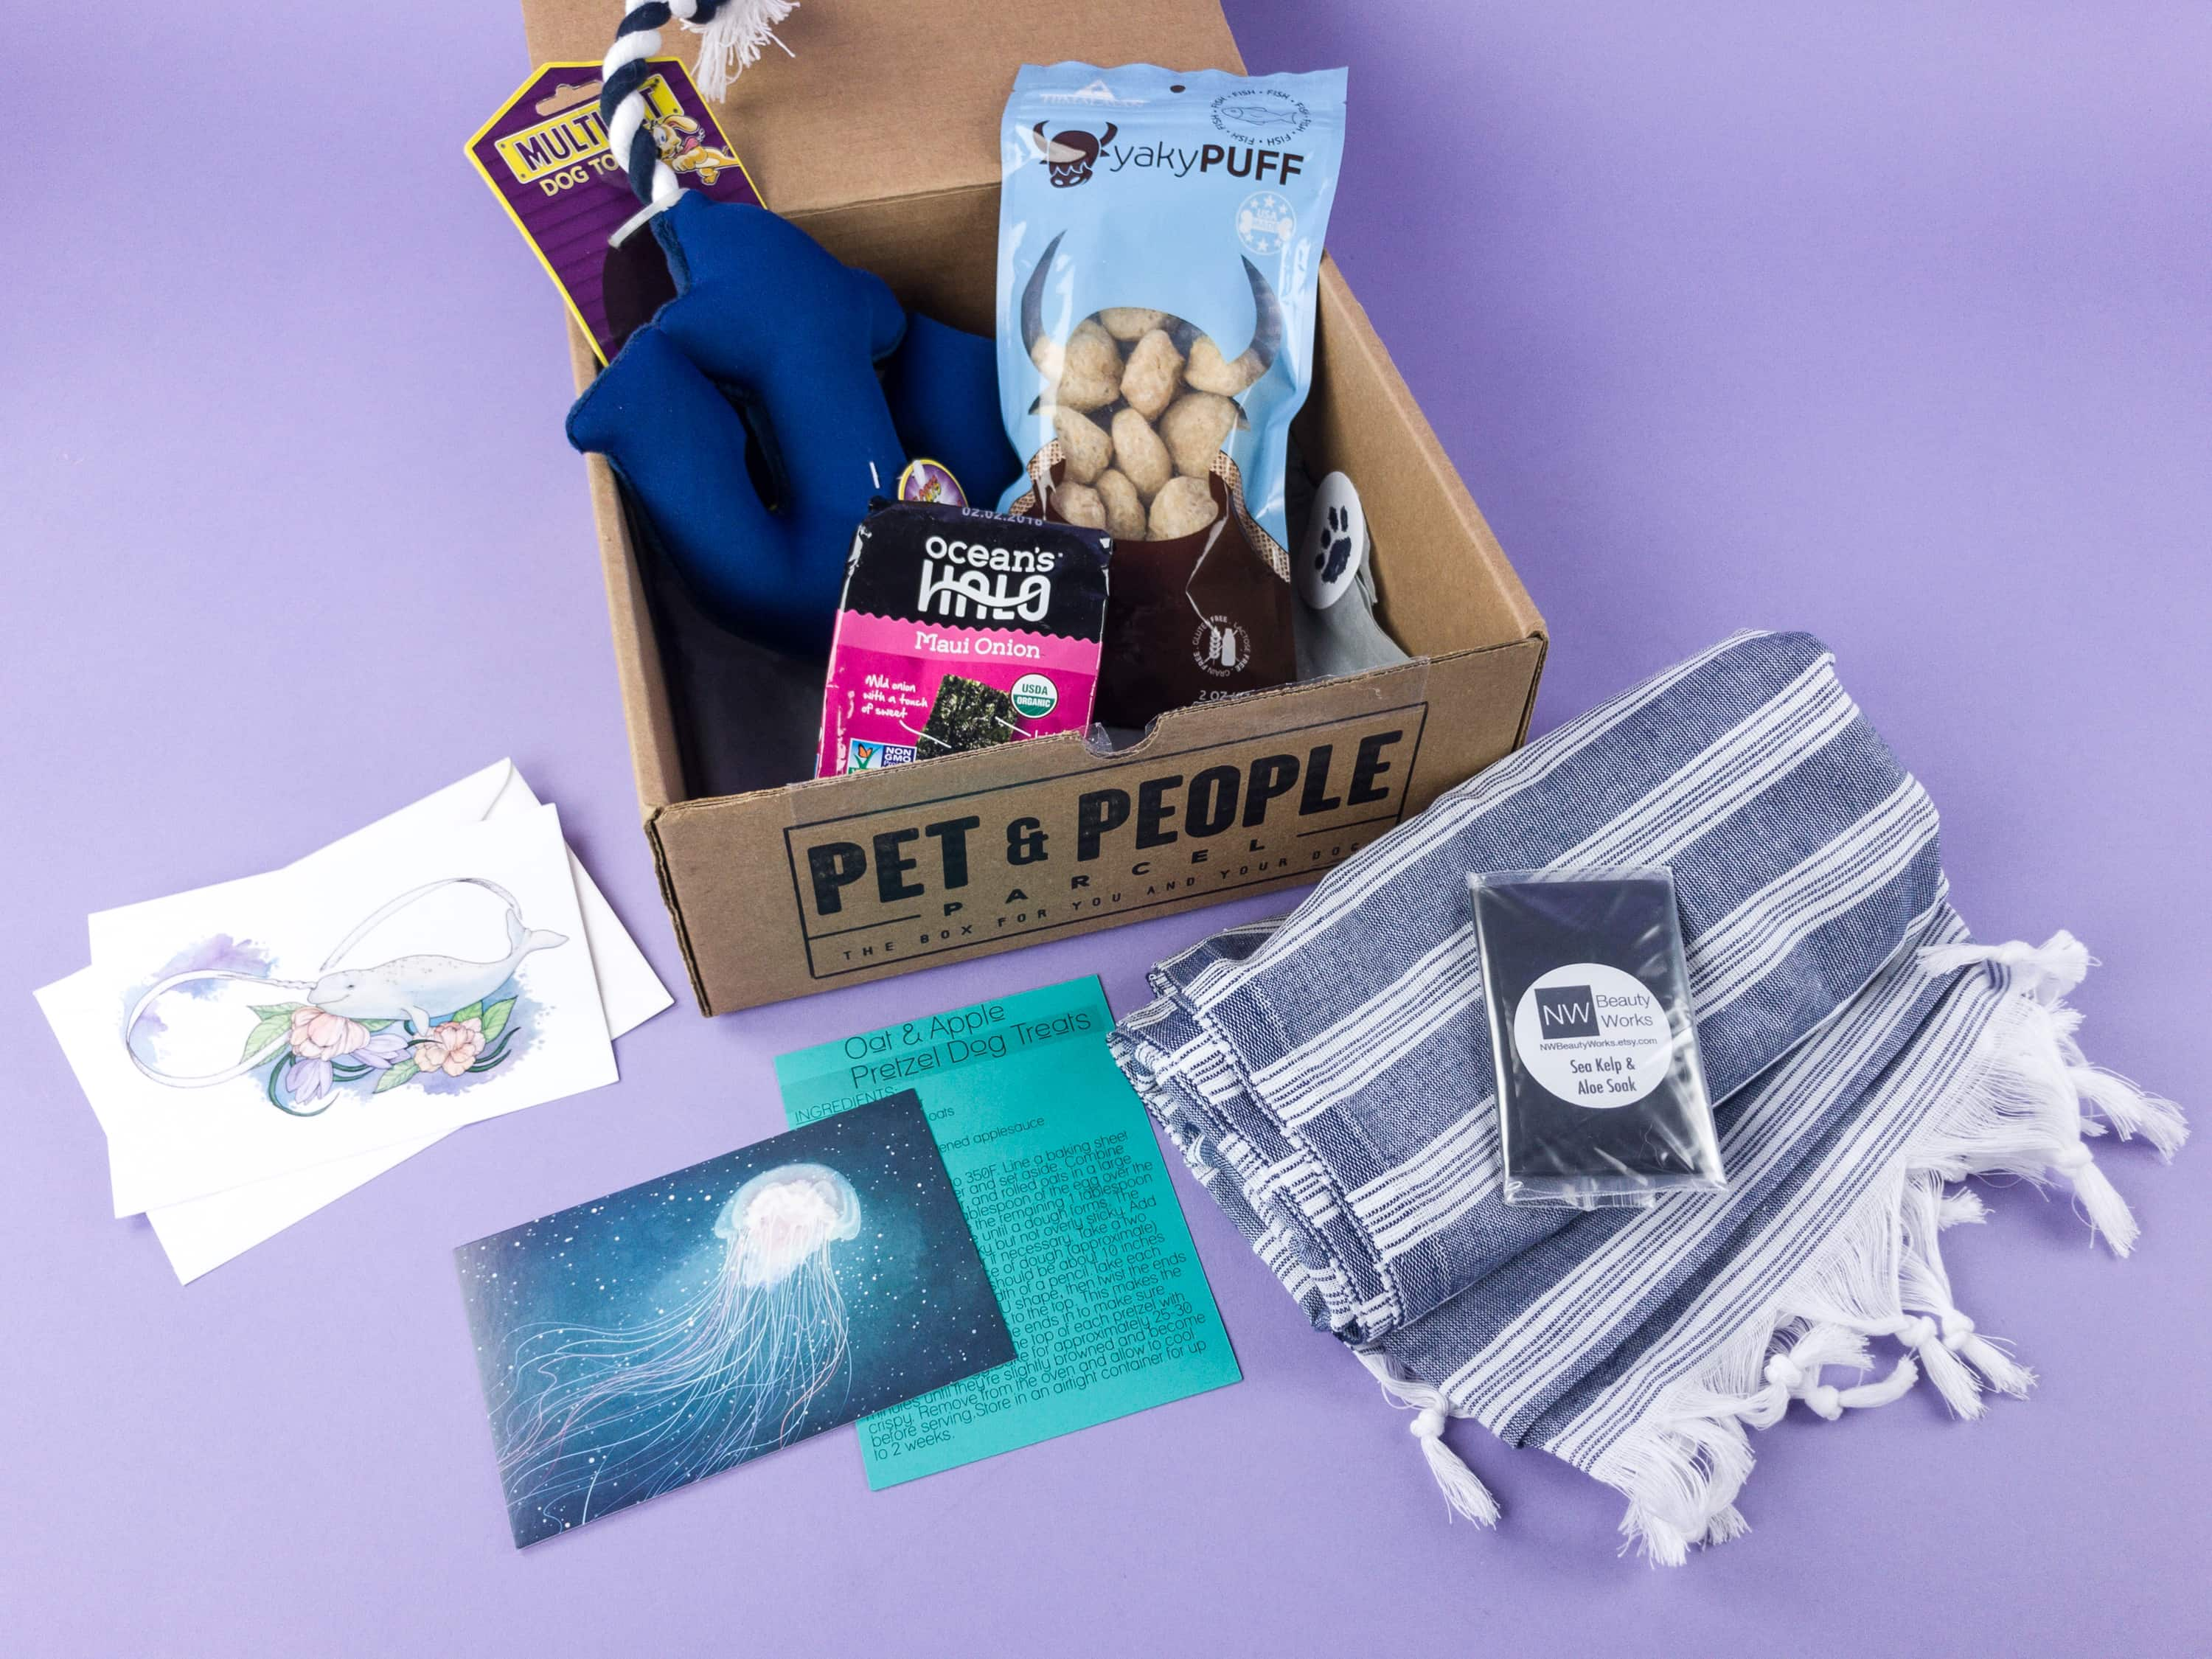 Save on Pet Life featured products with coupon codes, discounts and Cash bankjack-downloadly.tked Promo Codes · Coupons Updated Daily · Free Shipping Codes · Hassle-Free SavingsBrands: Nike, Macy's, Tory Burch, Best Buy, Crate&Barrel, Levi's, Sephora, Groupon.